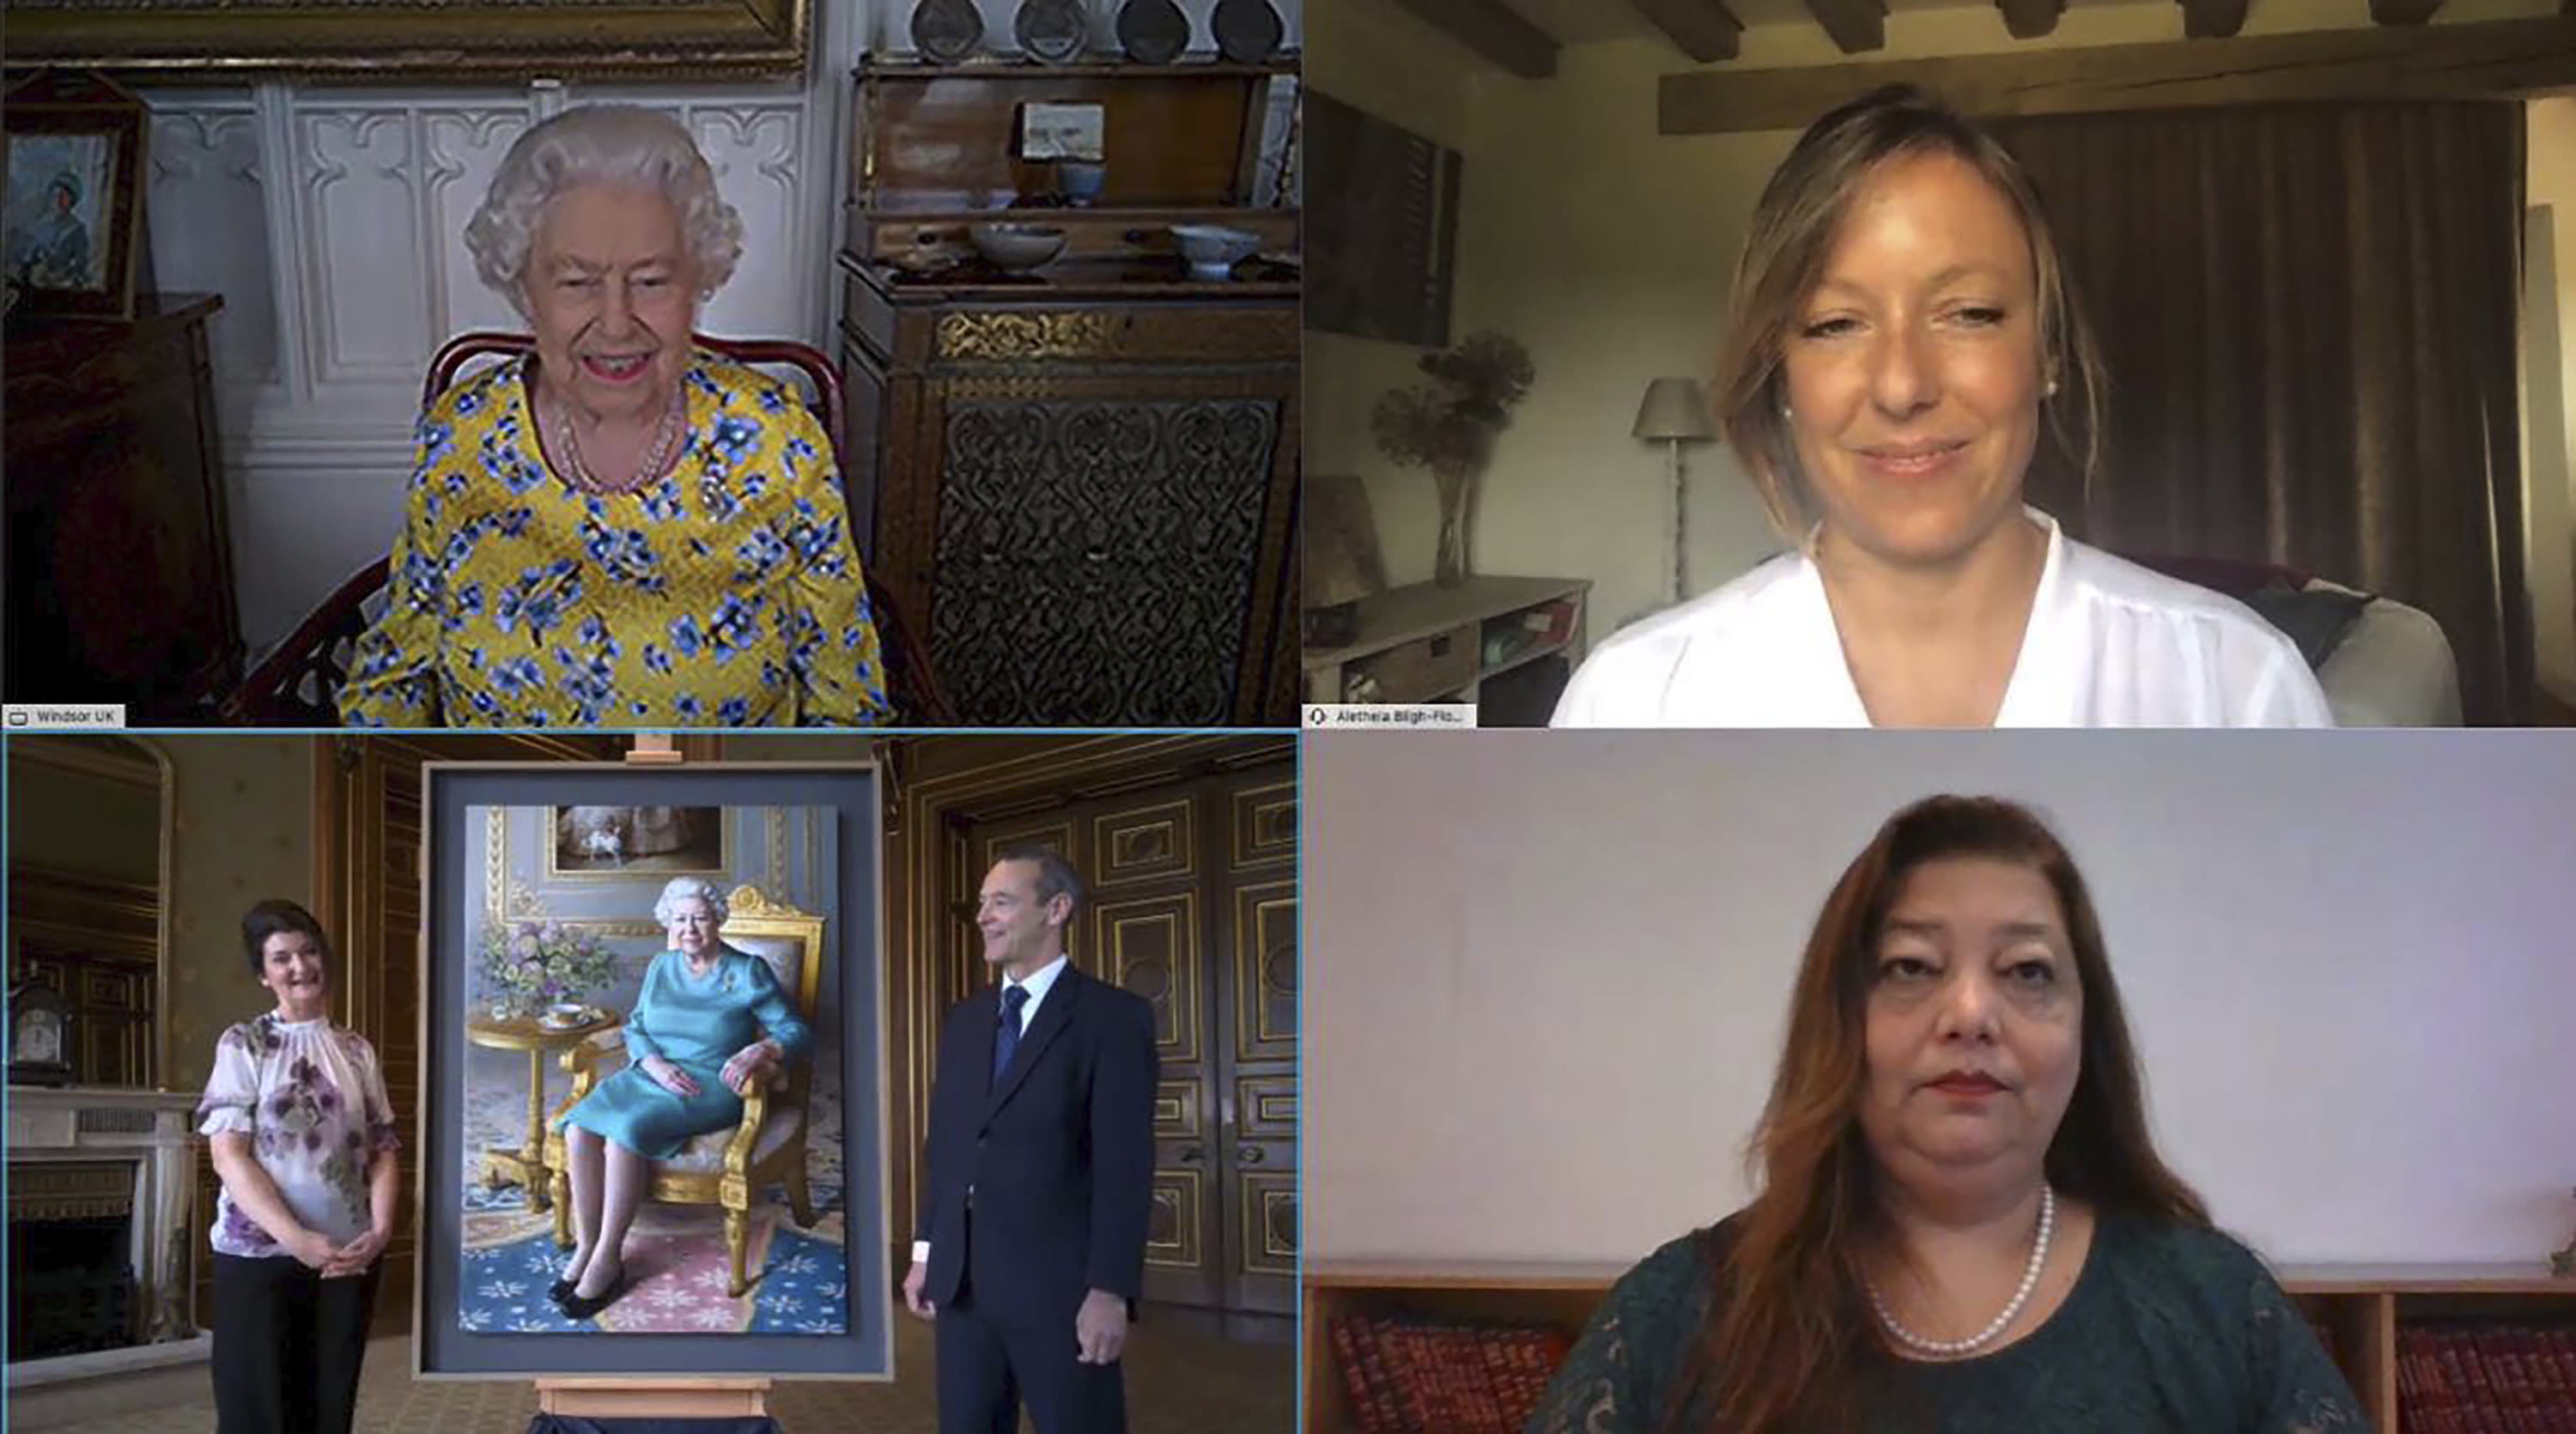 Queen Elizabeth II joins virtual unveiling of portrait